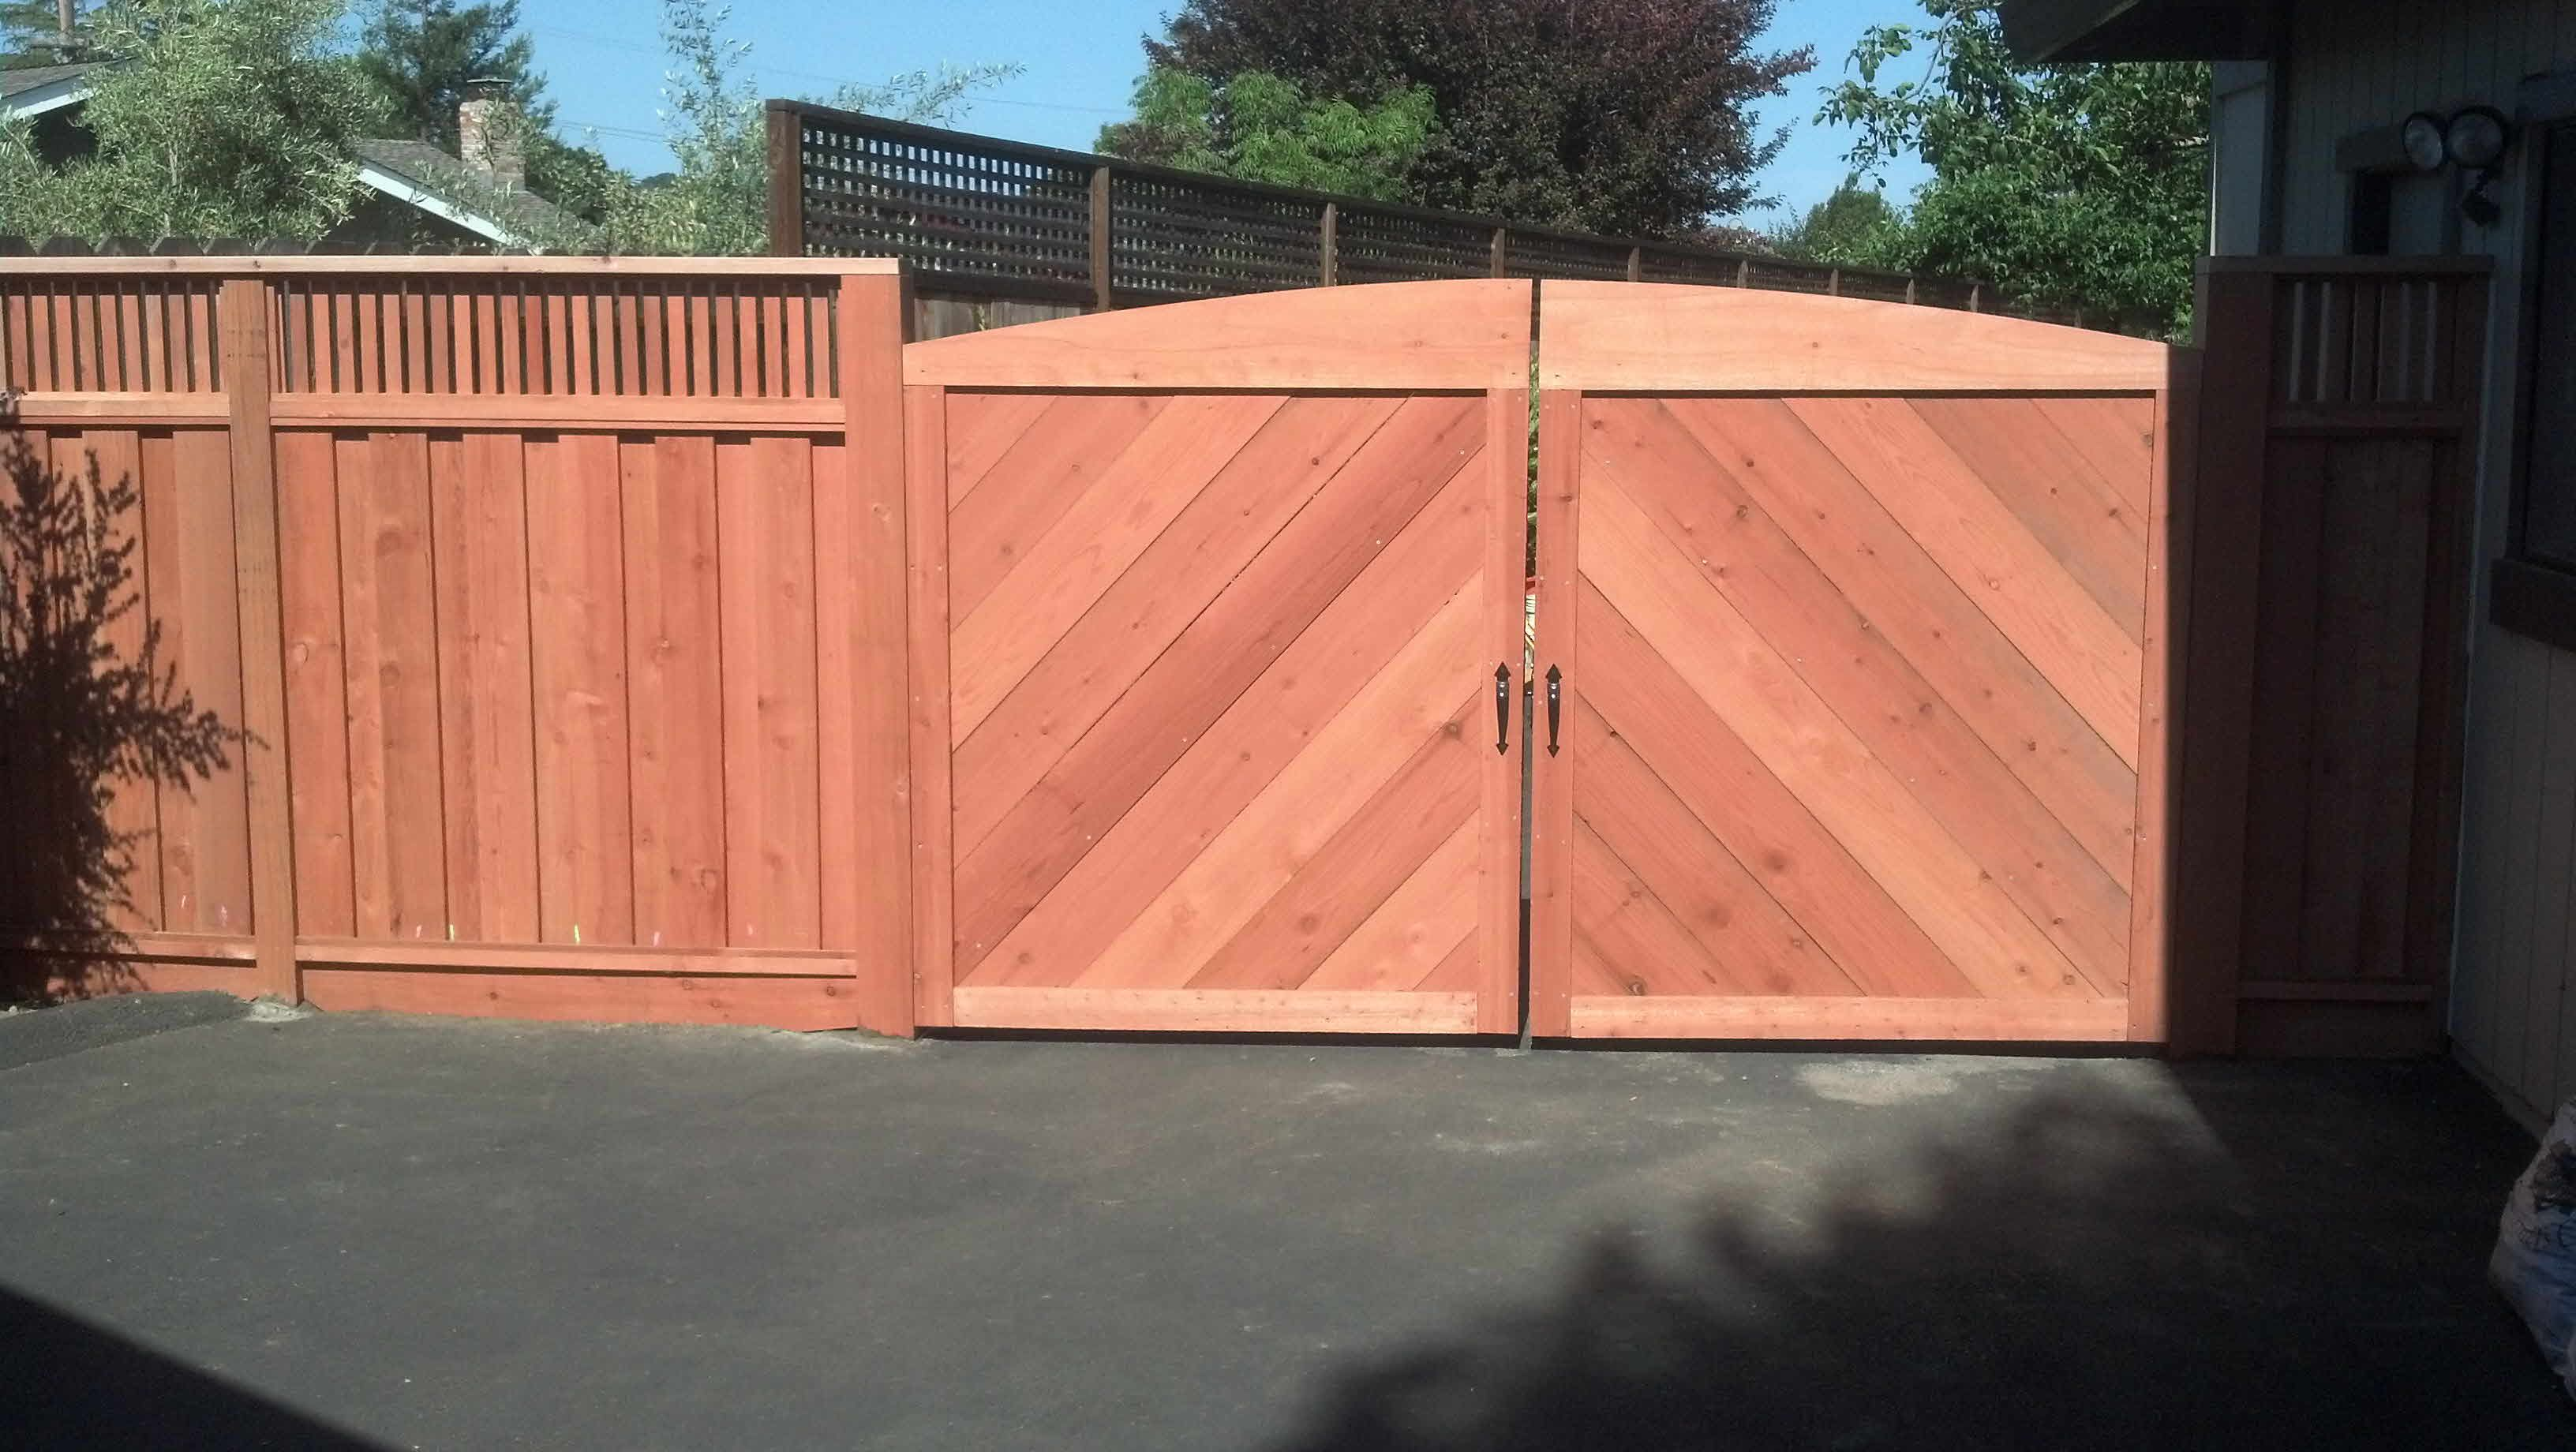 Redwood Fencing Board On Board With Vertical Top Lattice Fence Design Redwood Fence Fence